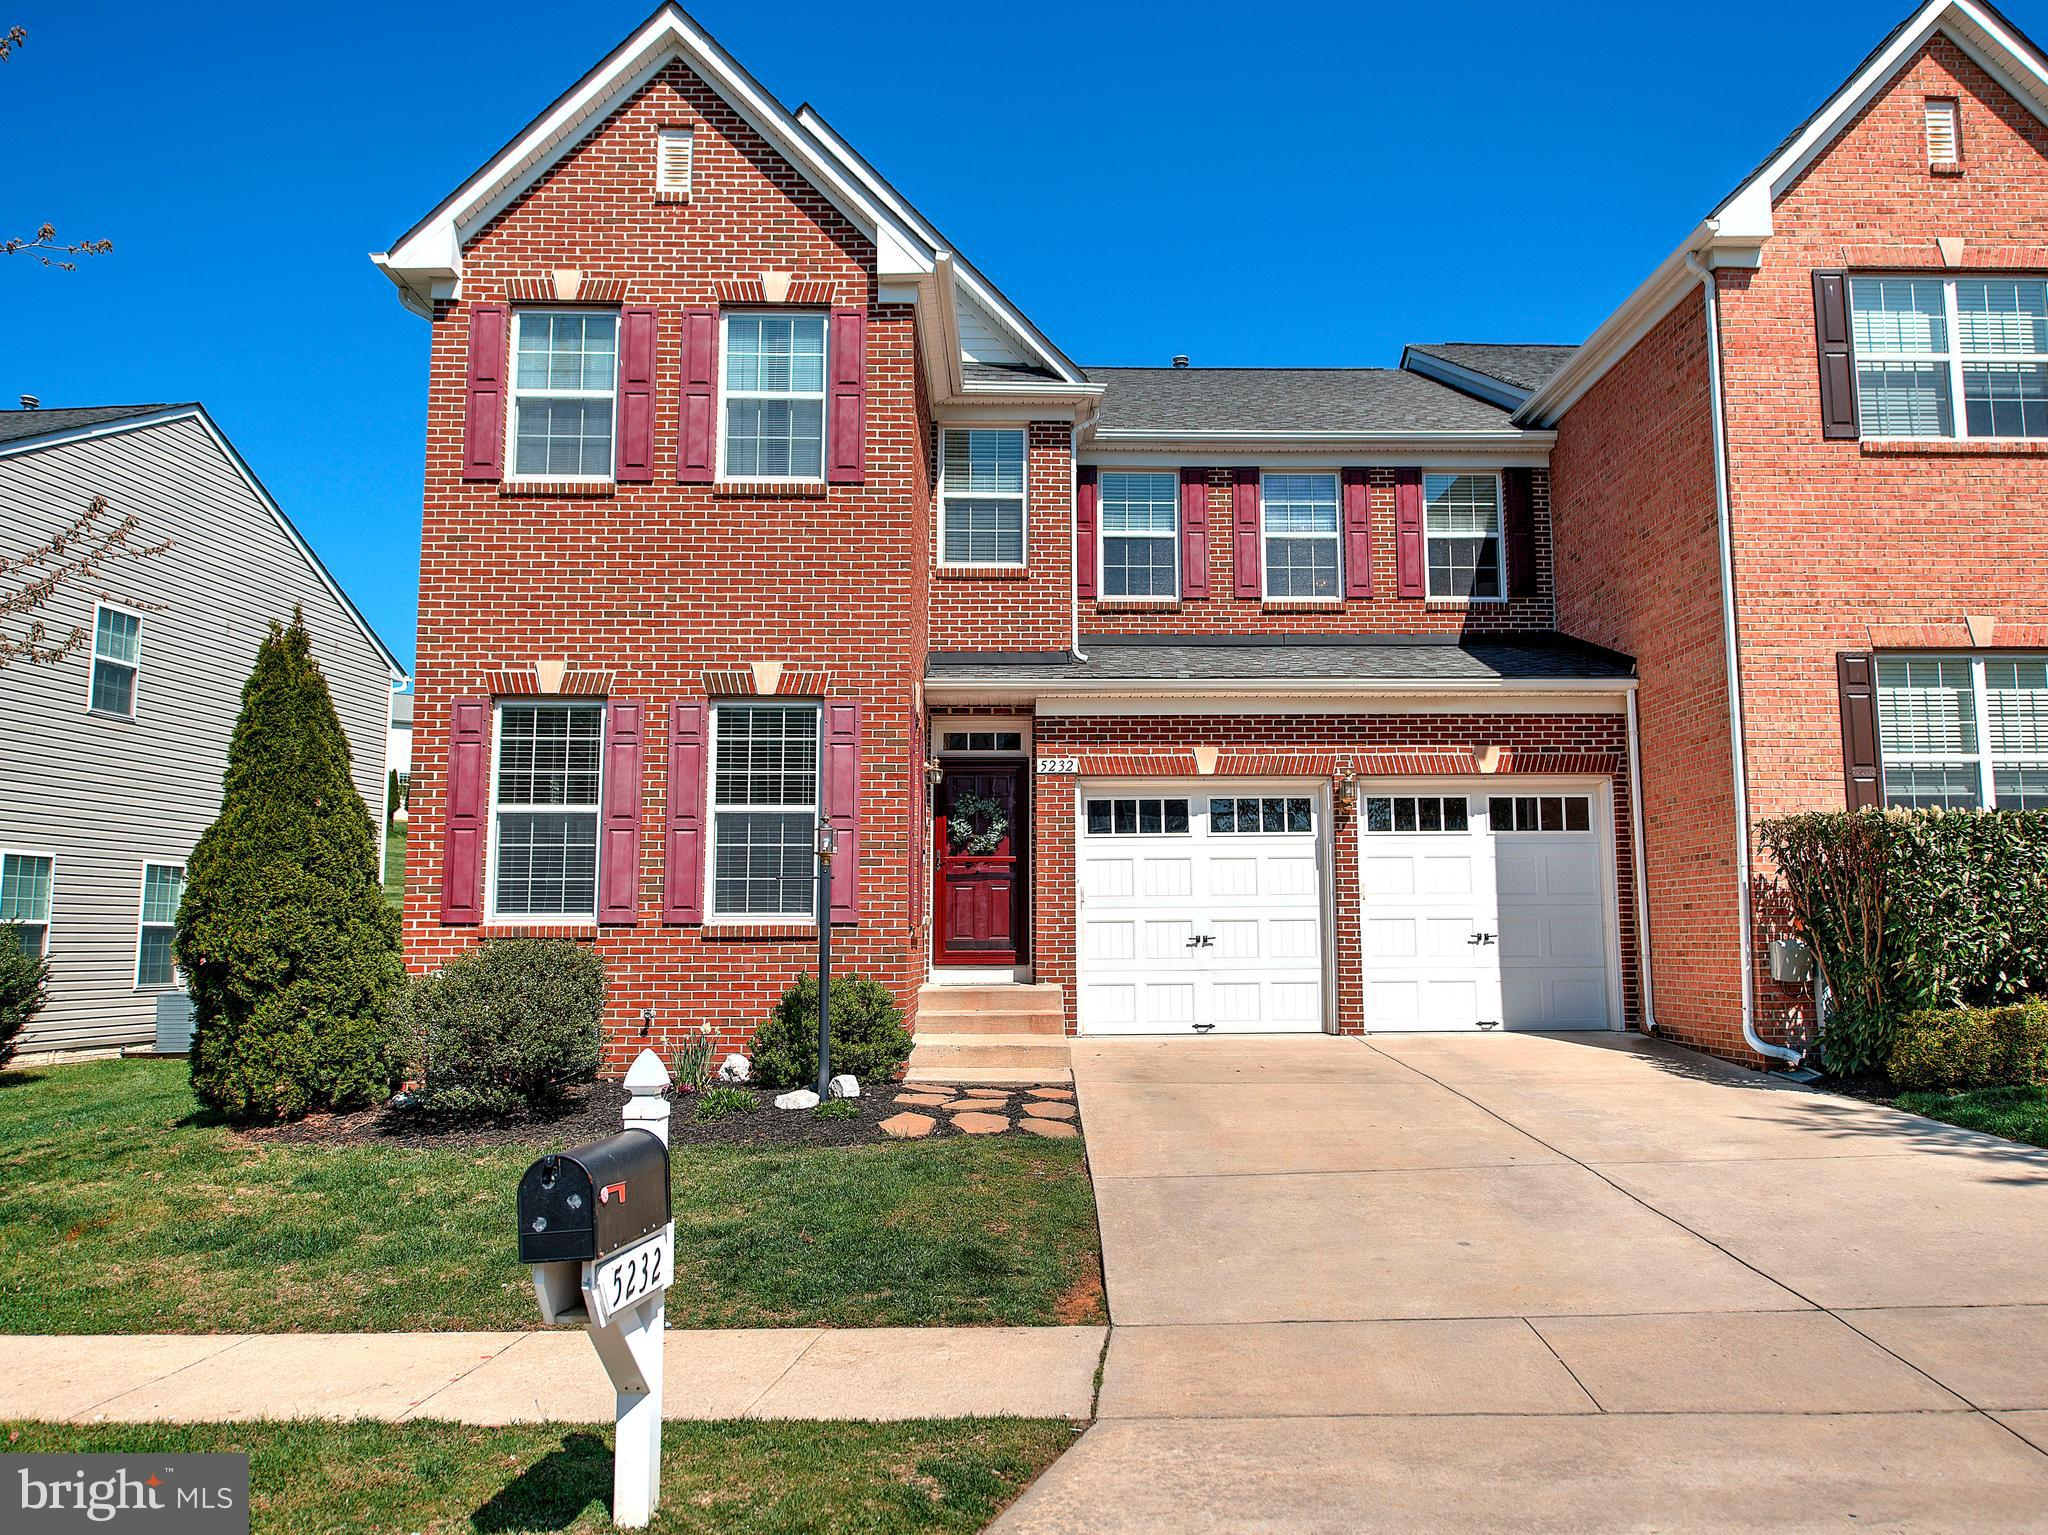 5232 MORNING DOVE WAY, PERRY HALL, Maryland 21128, 4 Bedrooms Bedrooms, ,4 BathroomsBathrooms,Townhouse,For Sale,5232 MORNING DOVE WAY,MDBC525060